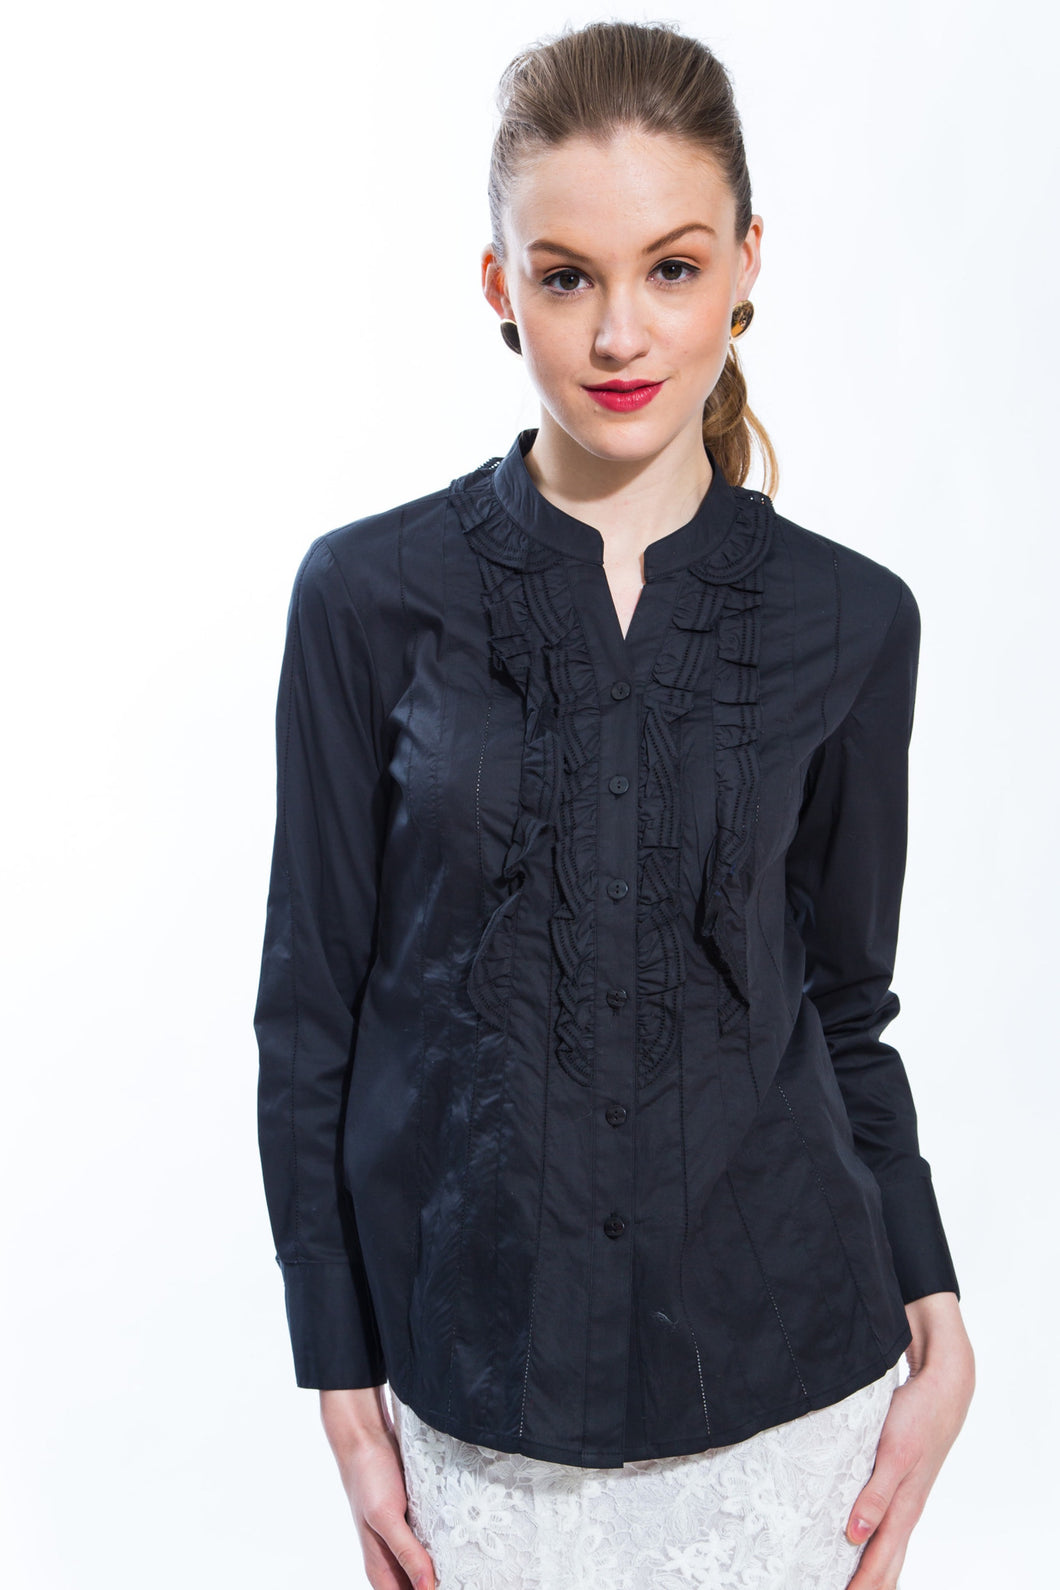 Ruffle Front Cotton Blouse (Black) Style 8143